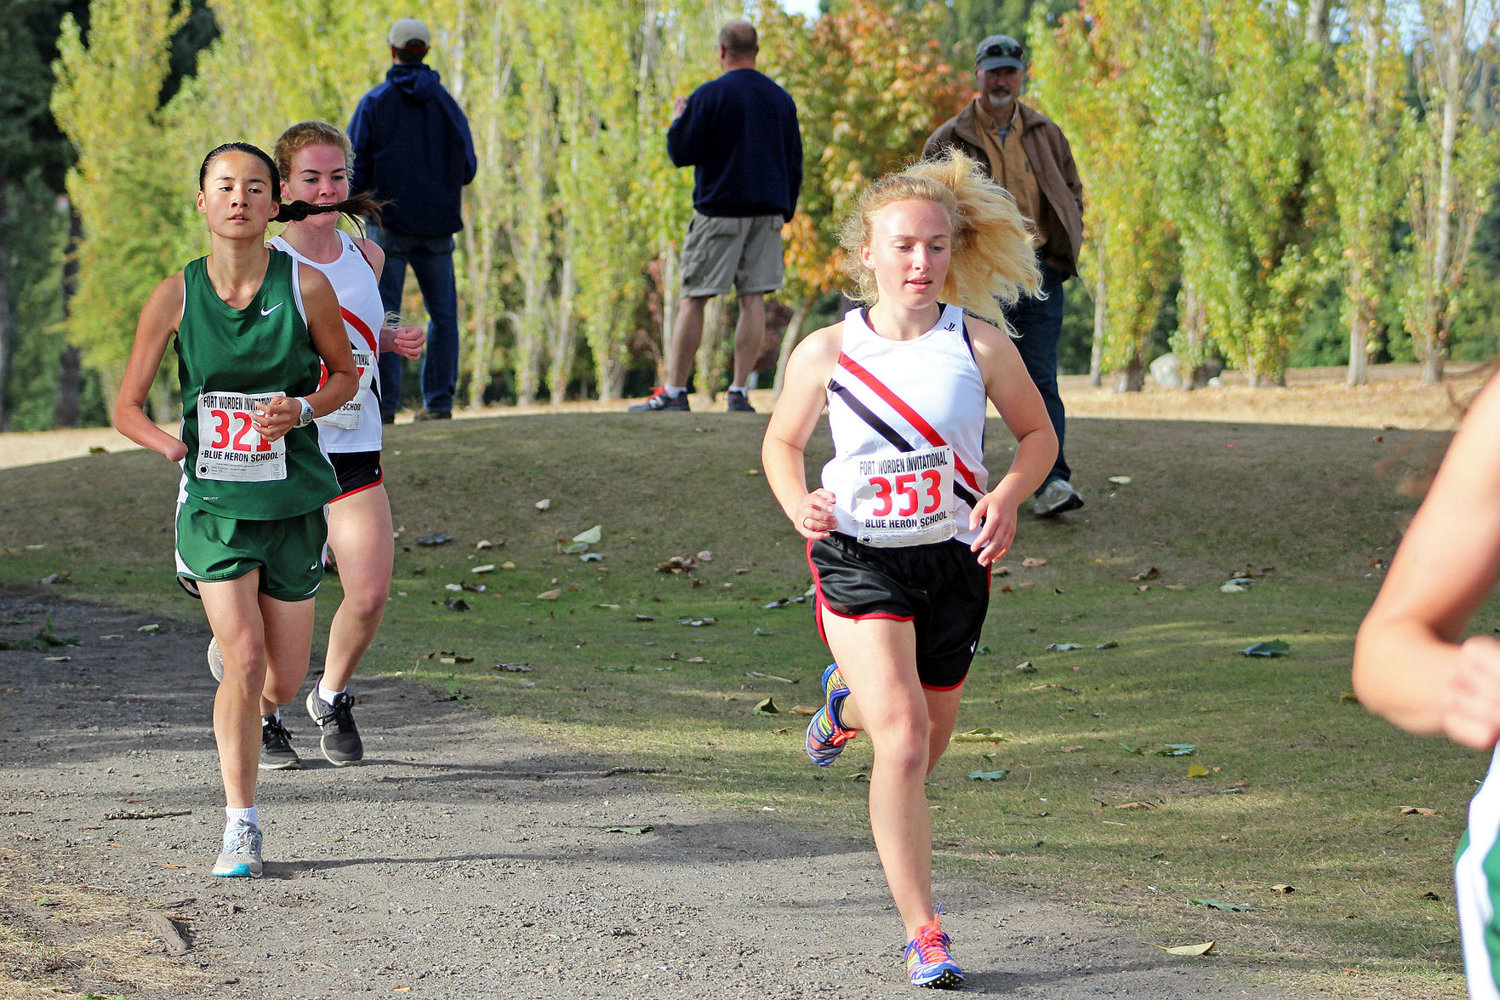 Port Townsend High School senior Ally Bradley placed fifth overall at 22:16 at the cross-country team's home meet Sept. 20 at the Port Townsend Golf Course. Photo by Donna Winter